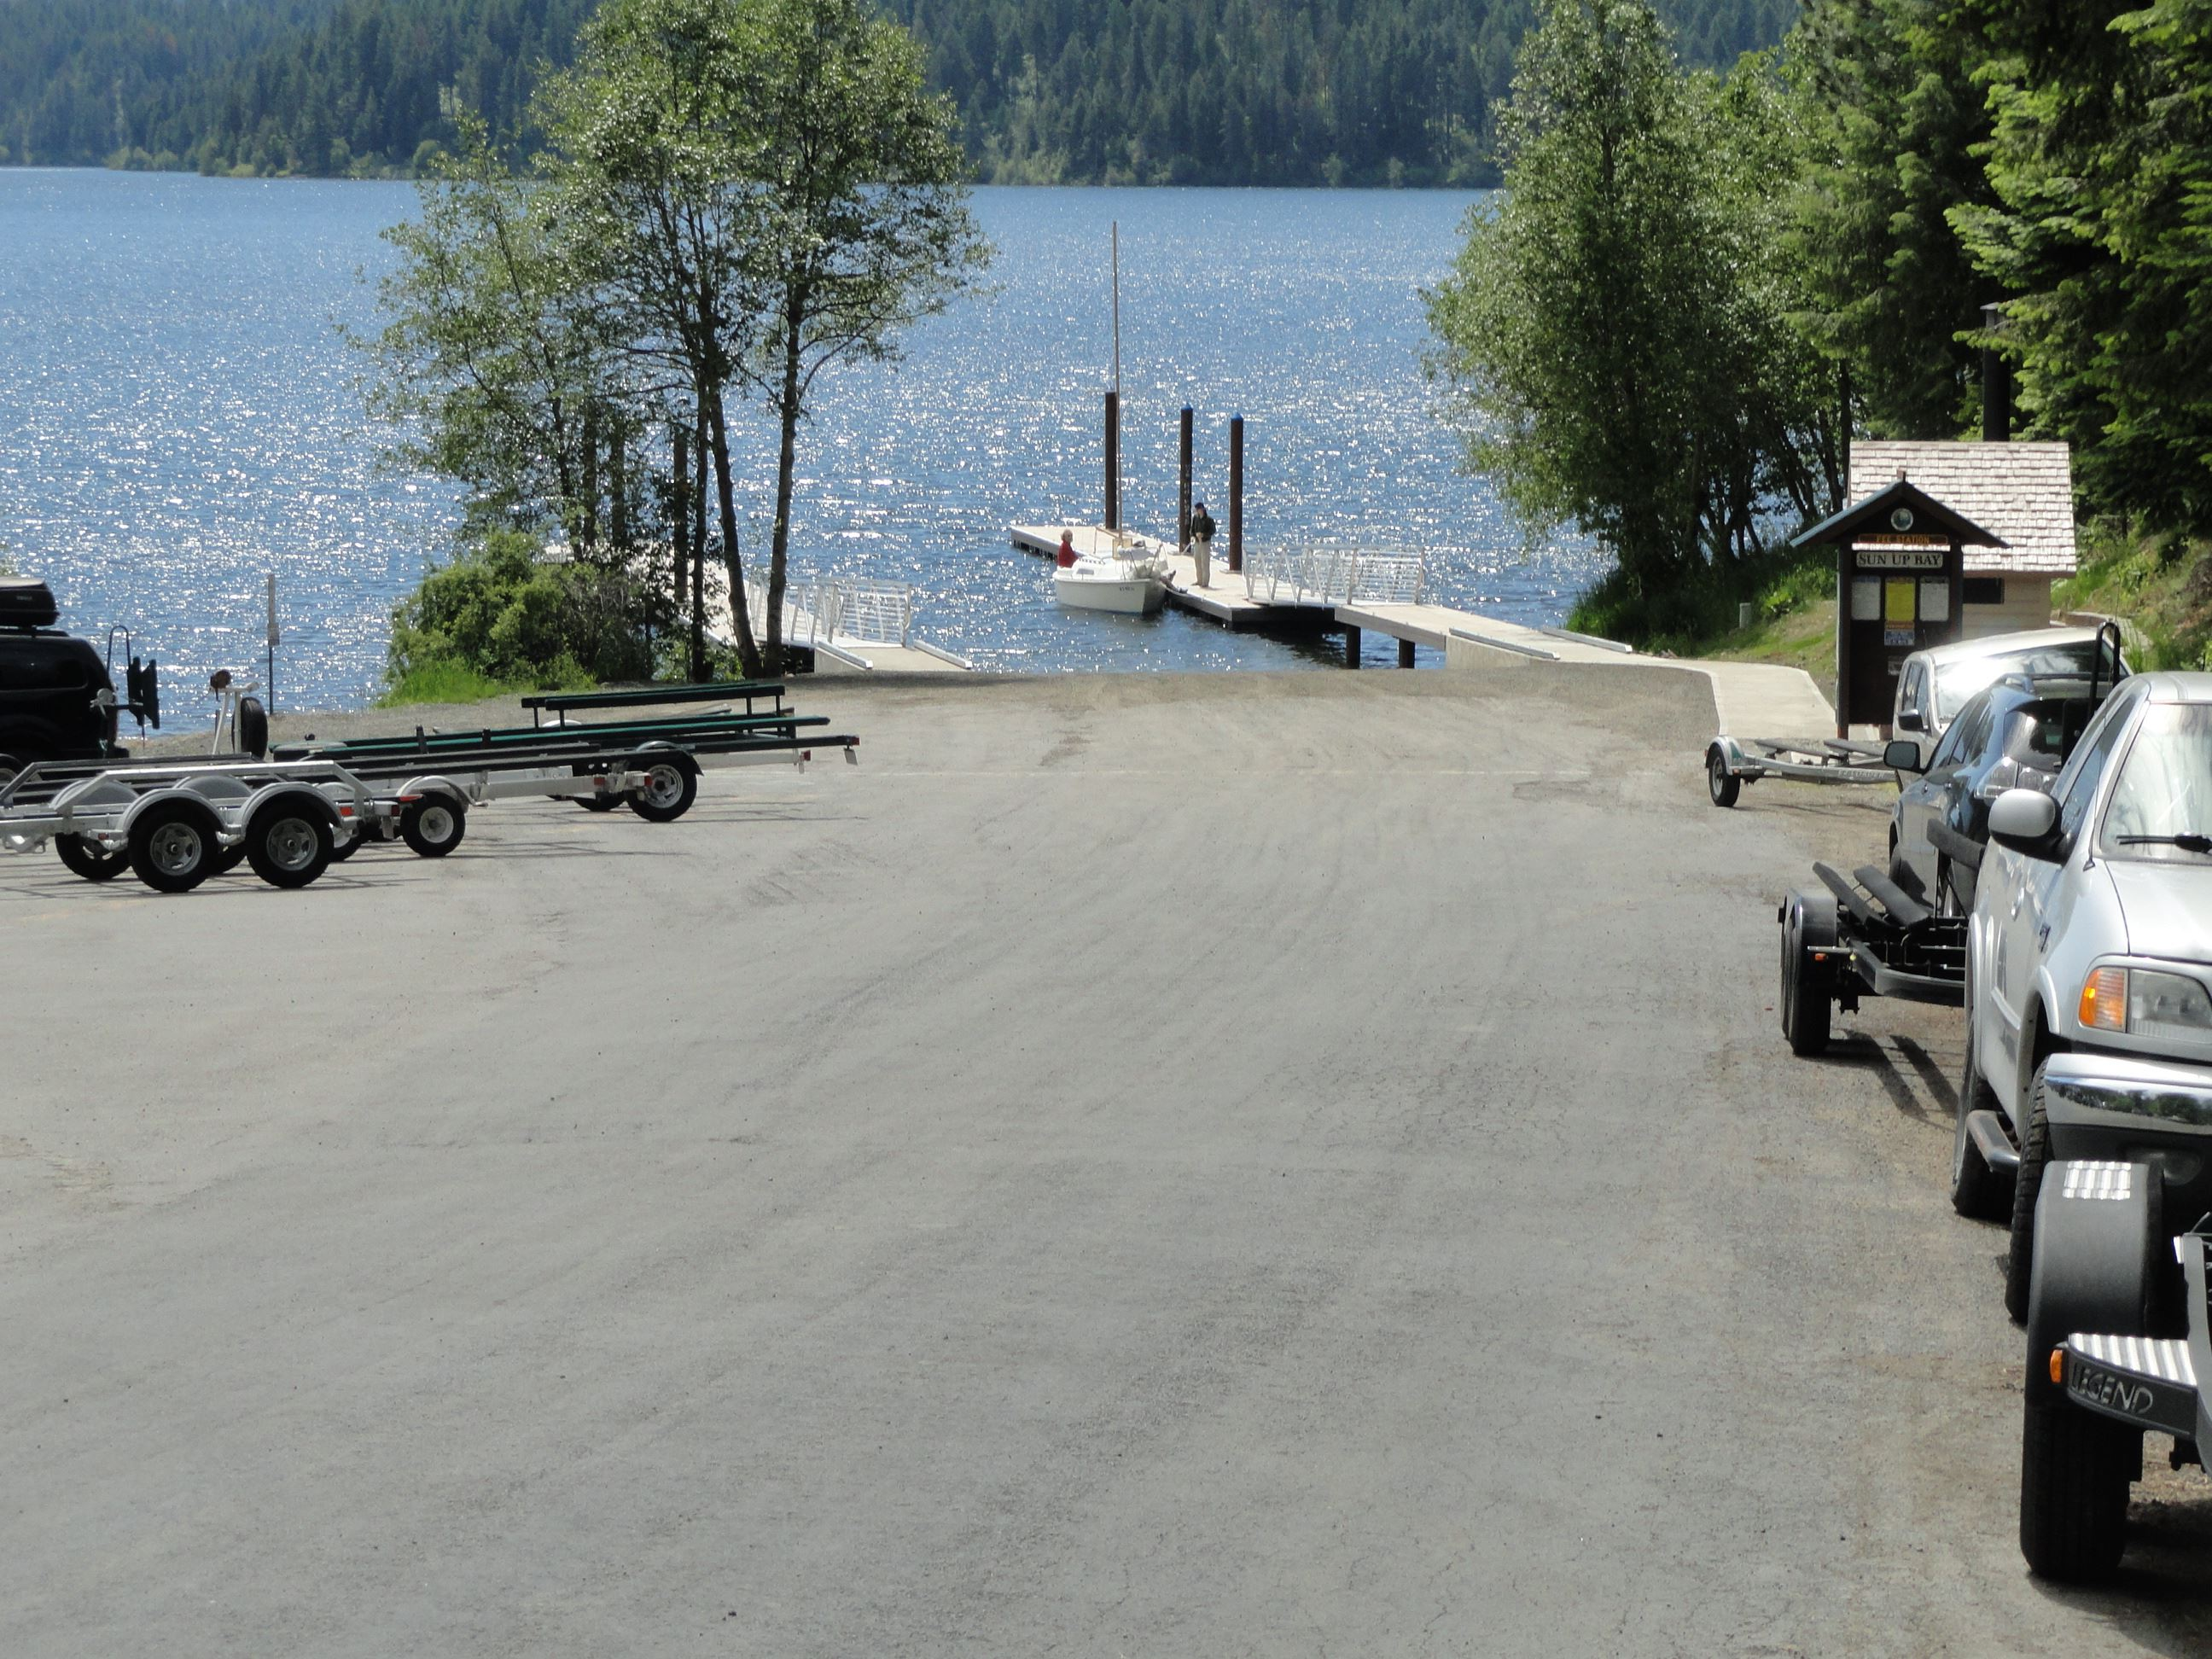 Road leading to lake with dock and launch